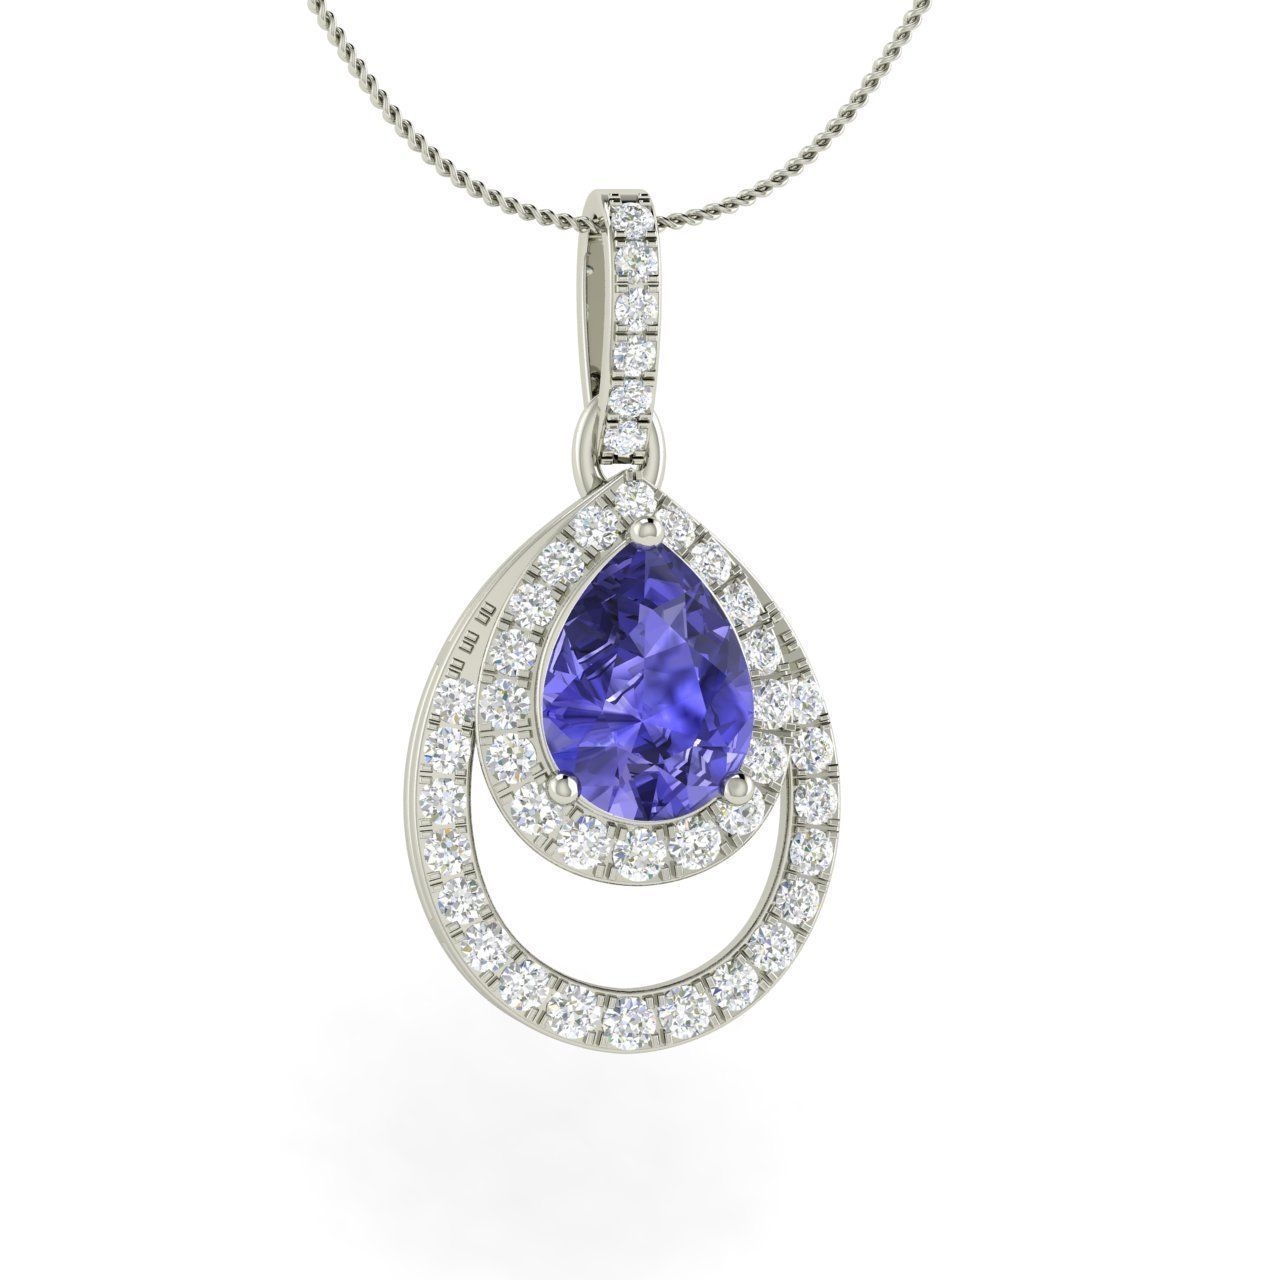 Natural oval cut tanzanite u diamond pendant necklace in white